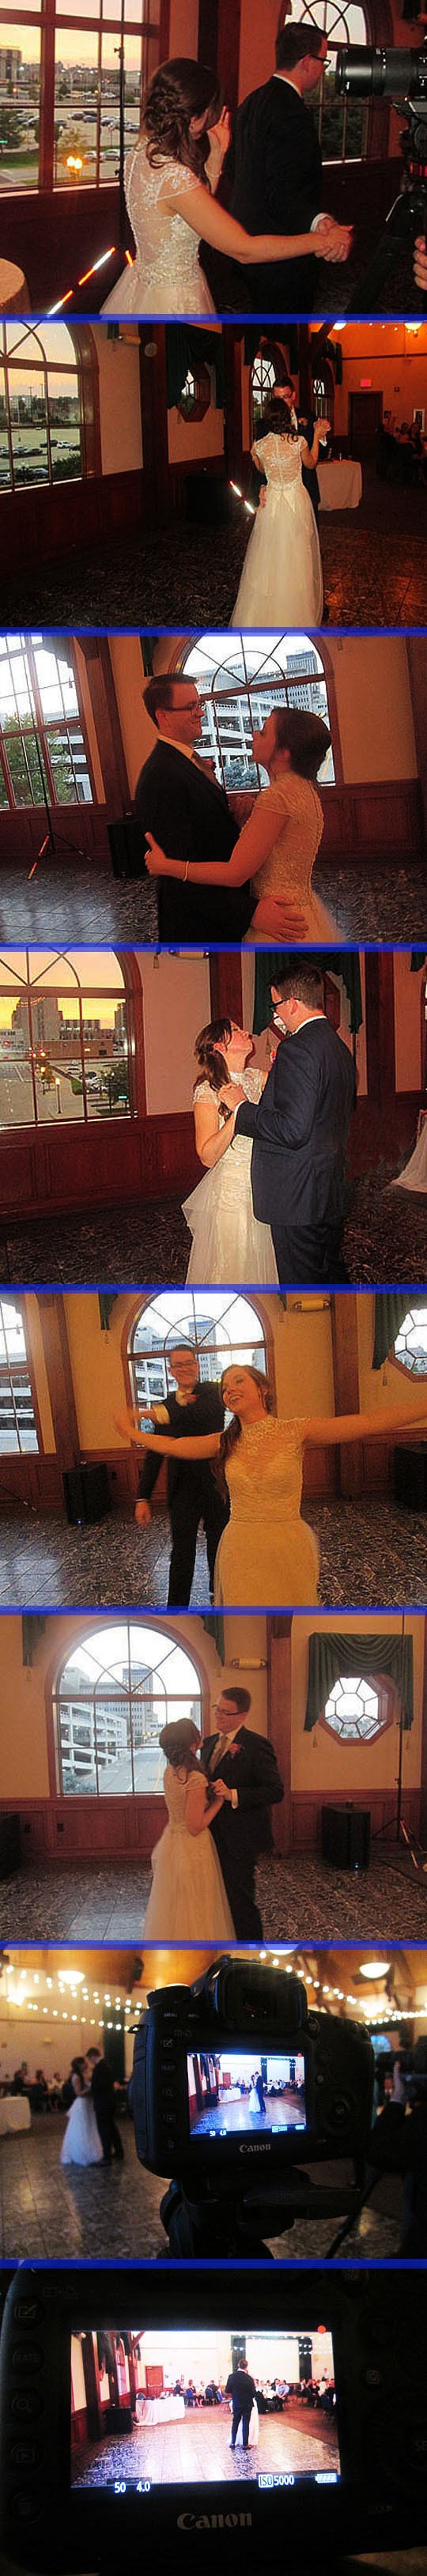 15. weddingdance_sept10-18.jpg